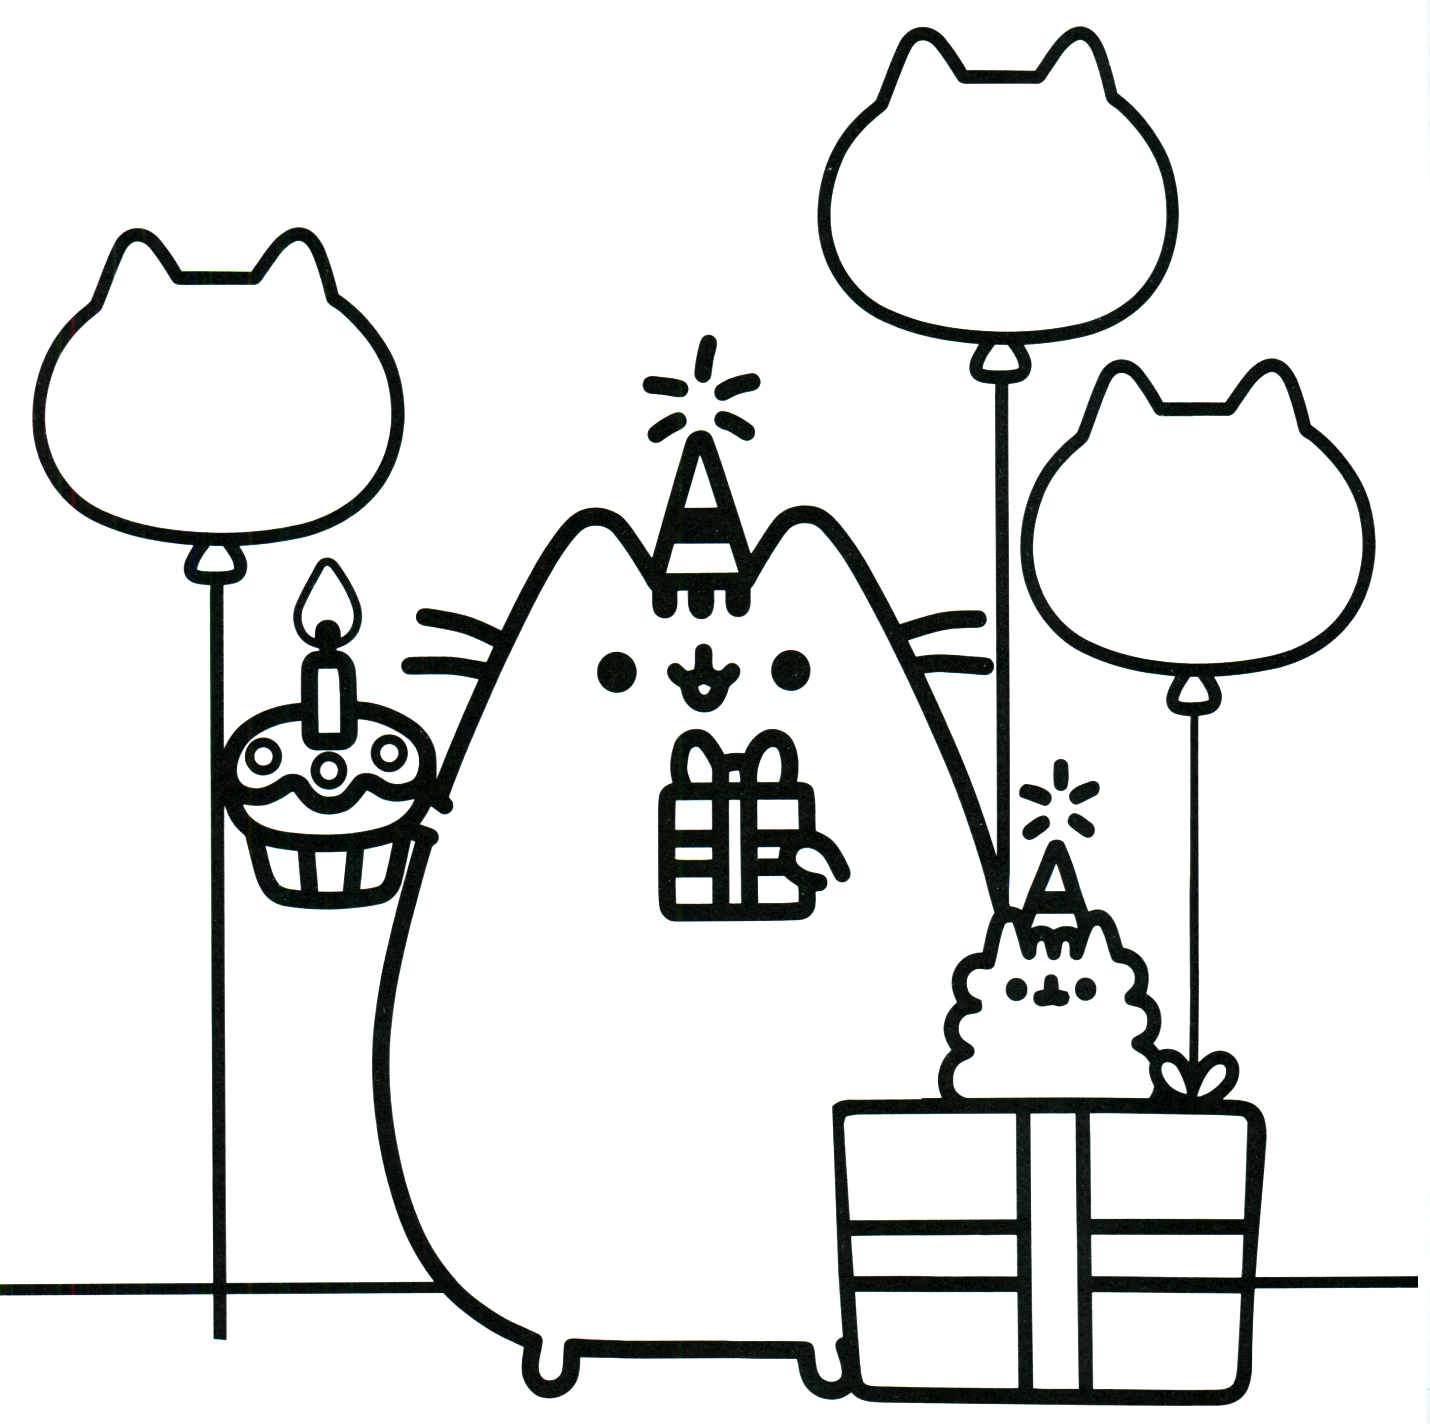 Pusheen Coloring Book Pusheen Pusheen the Cat | Drowning | Pinterest ...